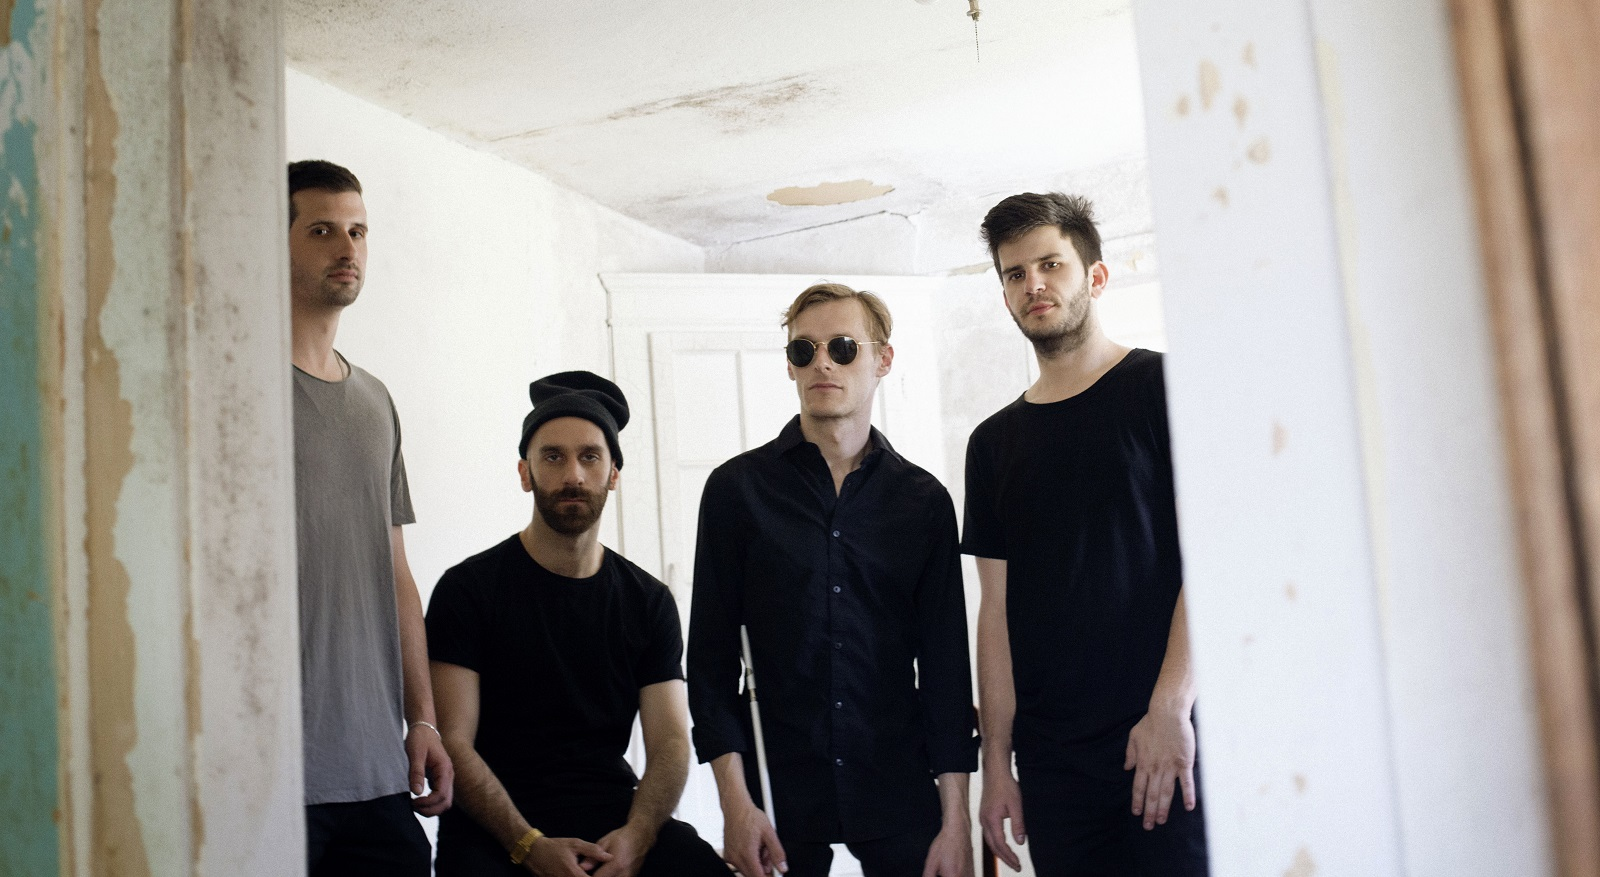 X Ambassadors will headline Alternative Buffalo's second birthday party, to be held at Showplace Theatre on Grant Street.